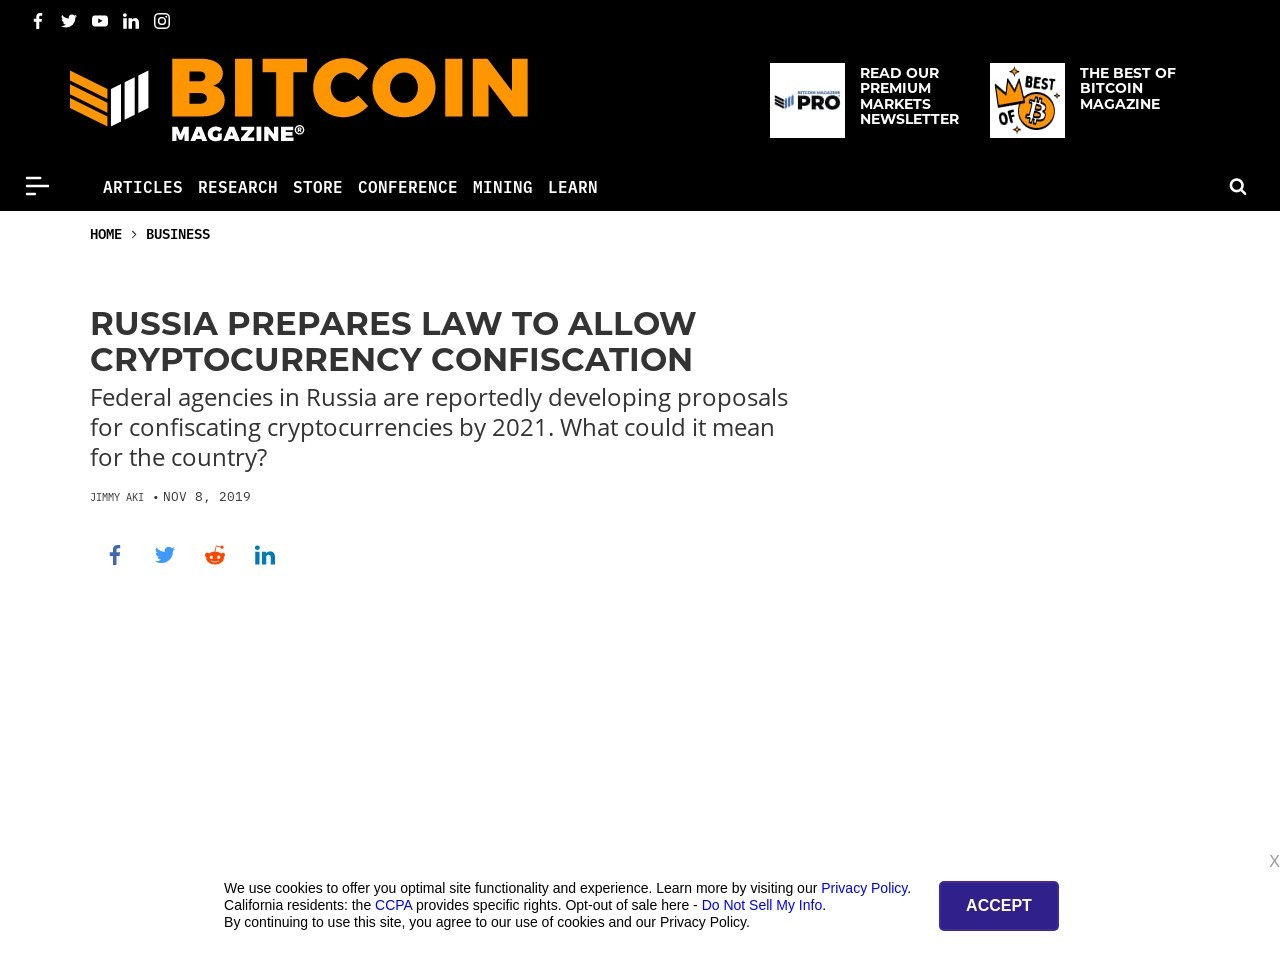 Russia Prepares Law to Allow Cryptocurrency Confiscation